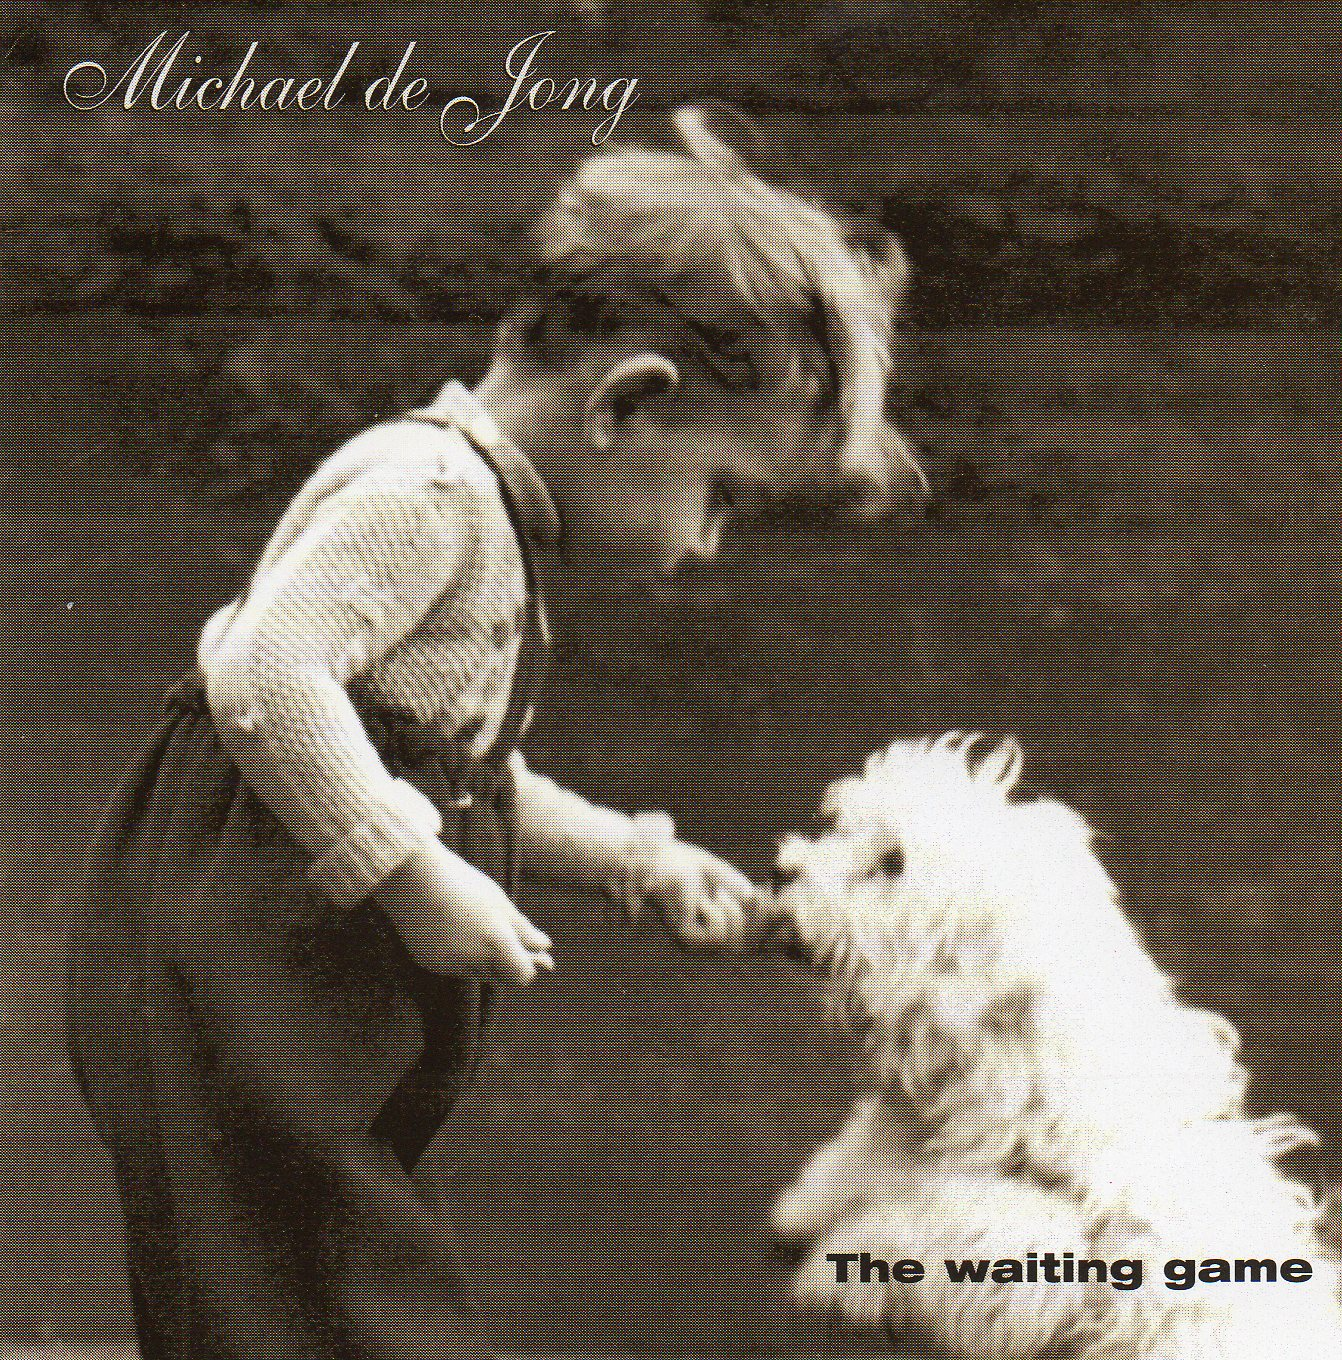 06Michael De Jong -The Waiting Game